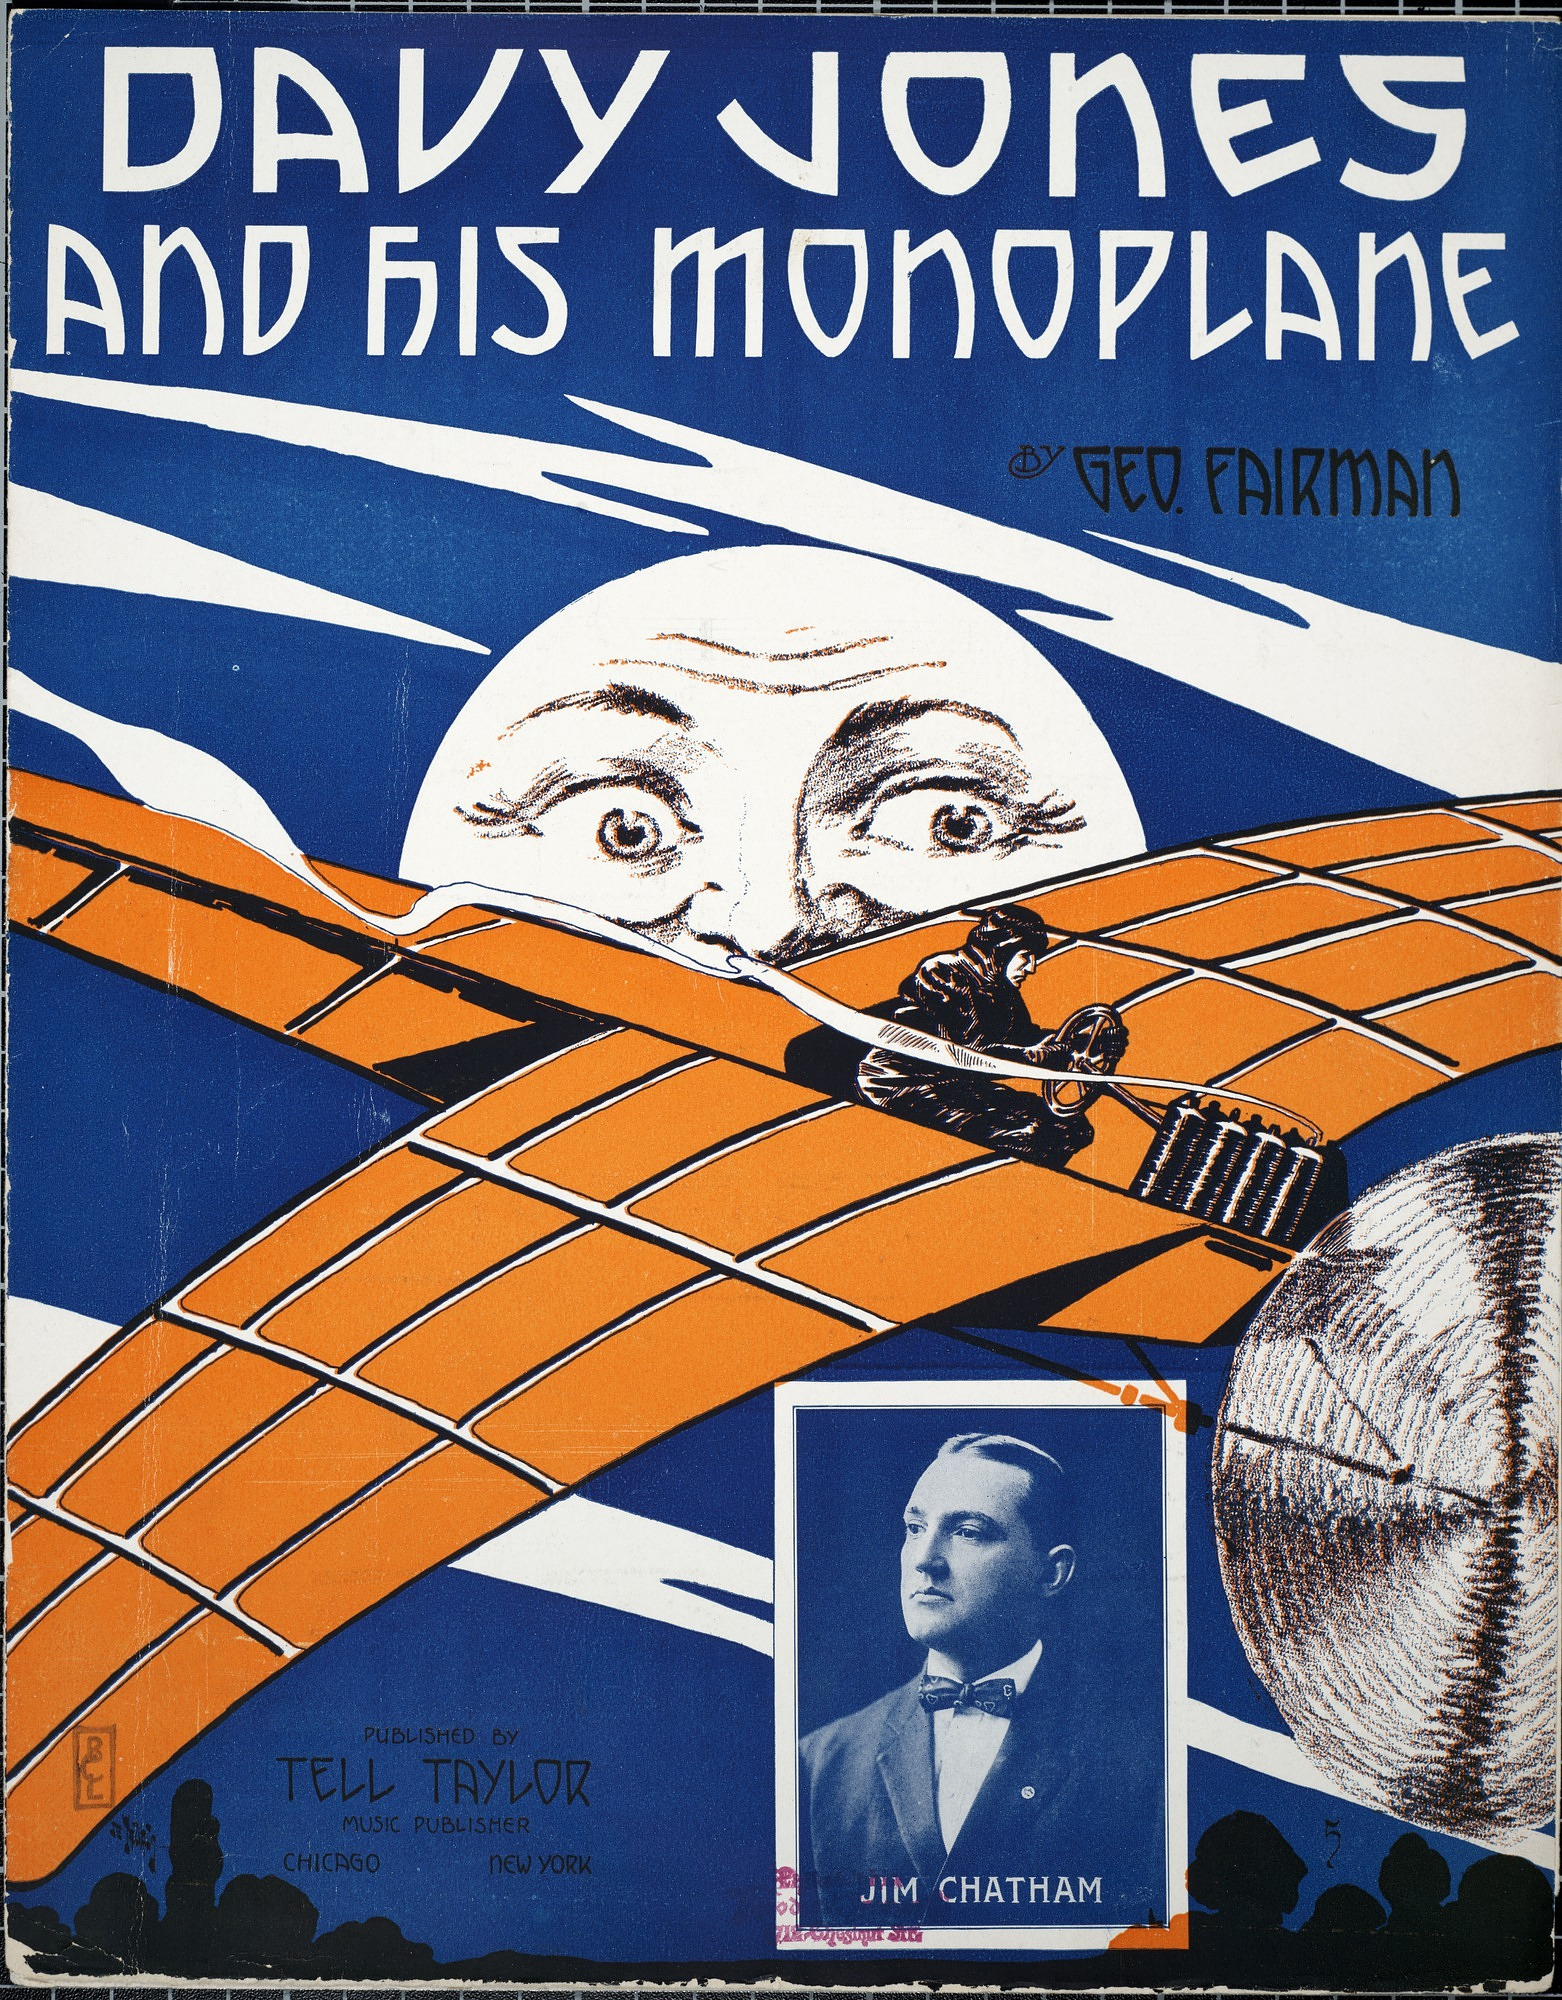 Davy Jones and his monoplane / words & music by Geo. Fairman